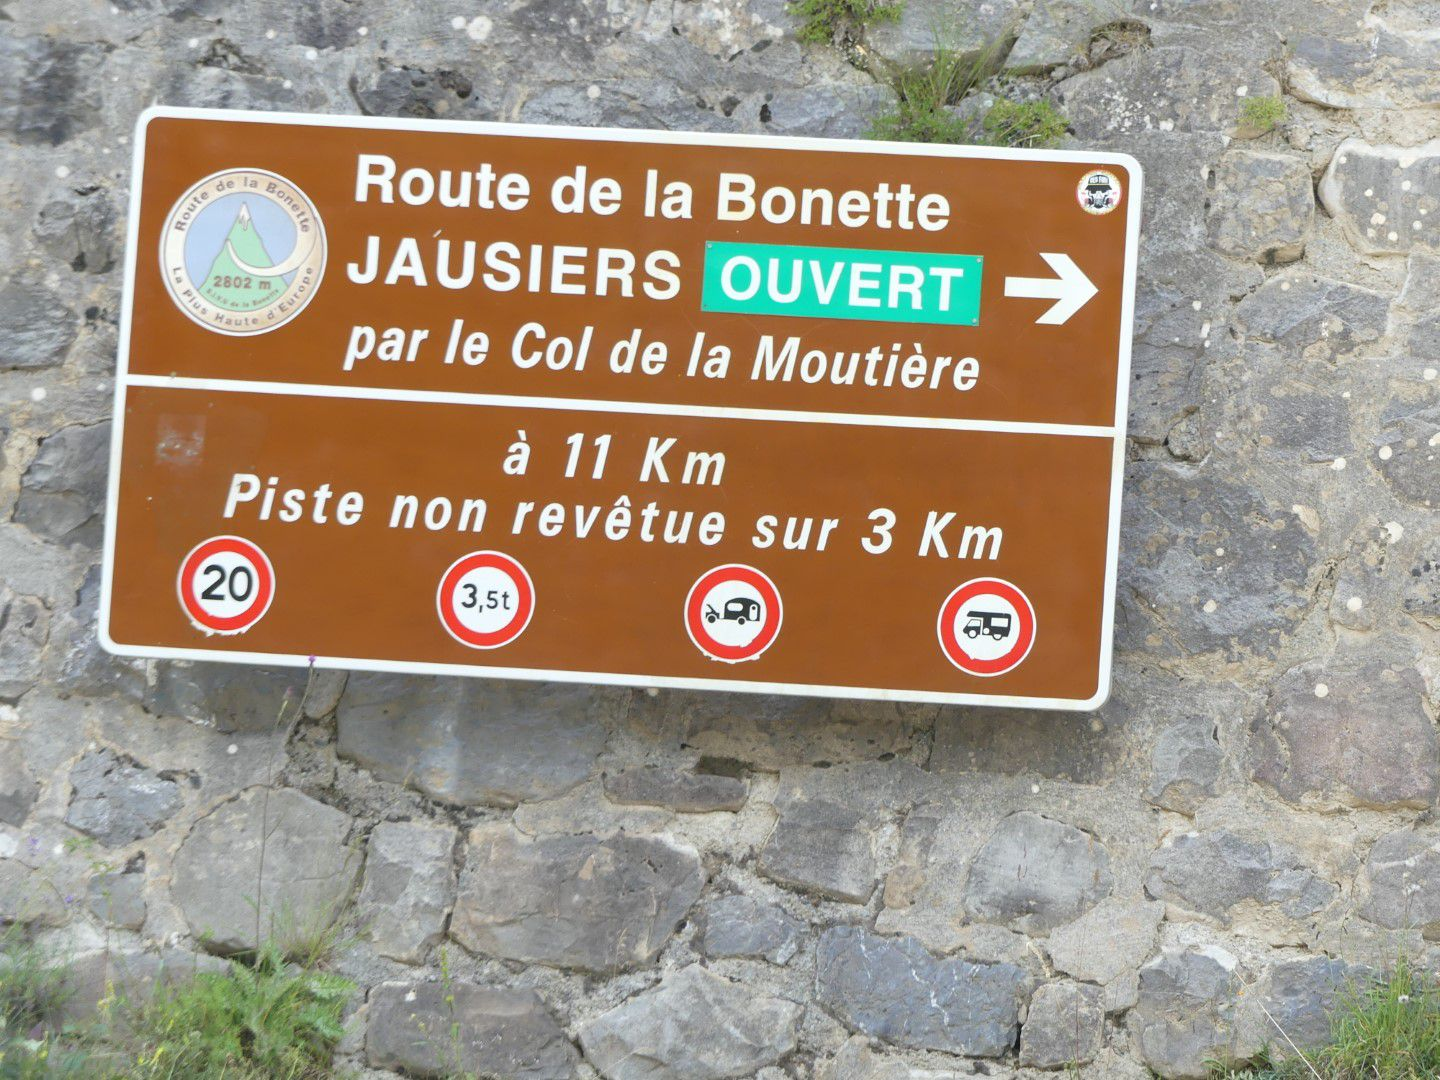 Route du col de la Moutière, Alpes maritimes, France